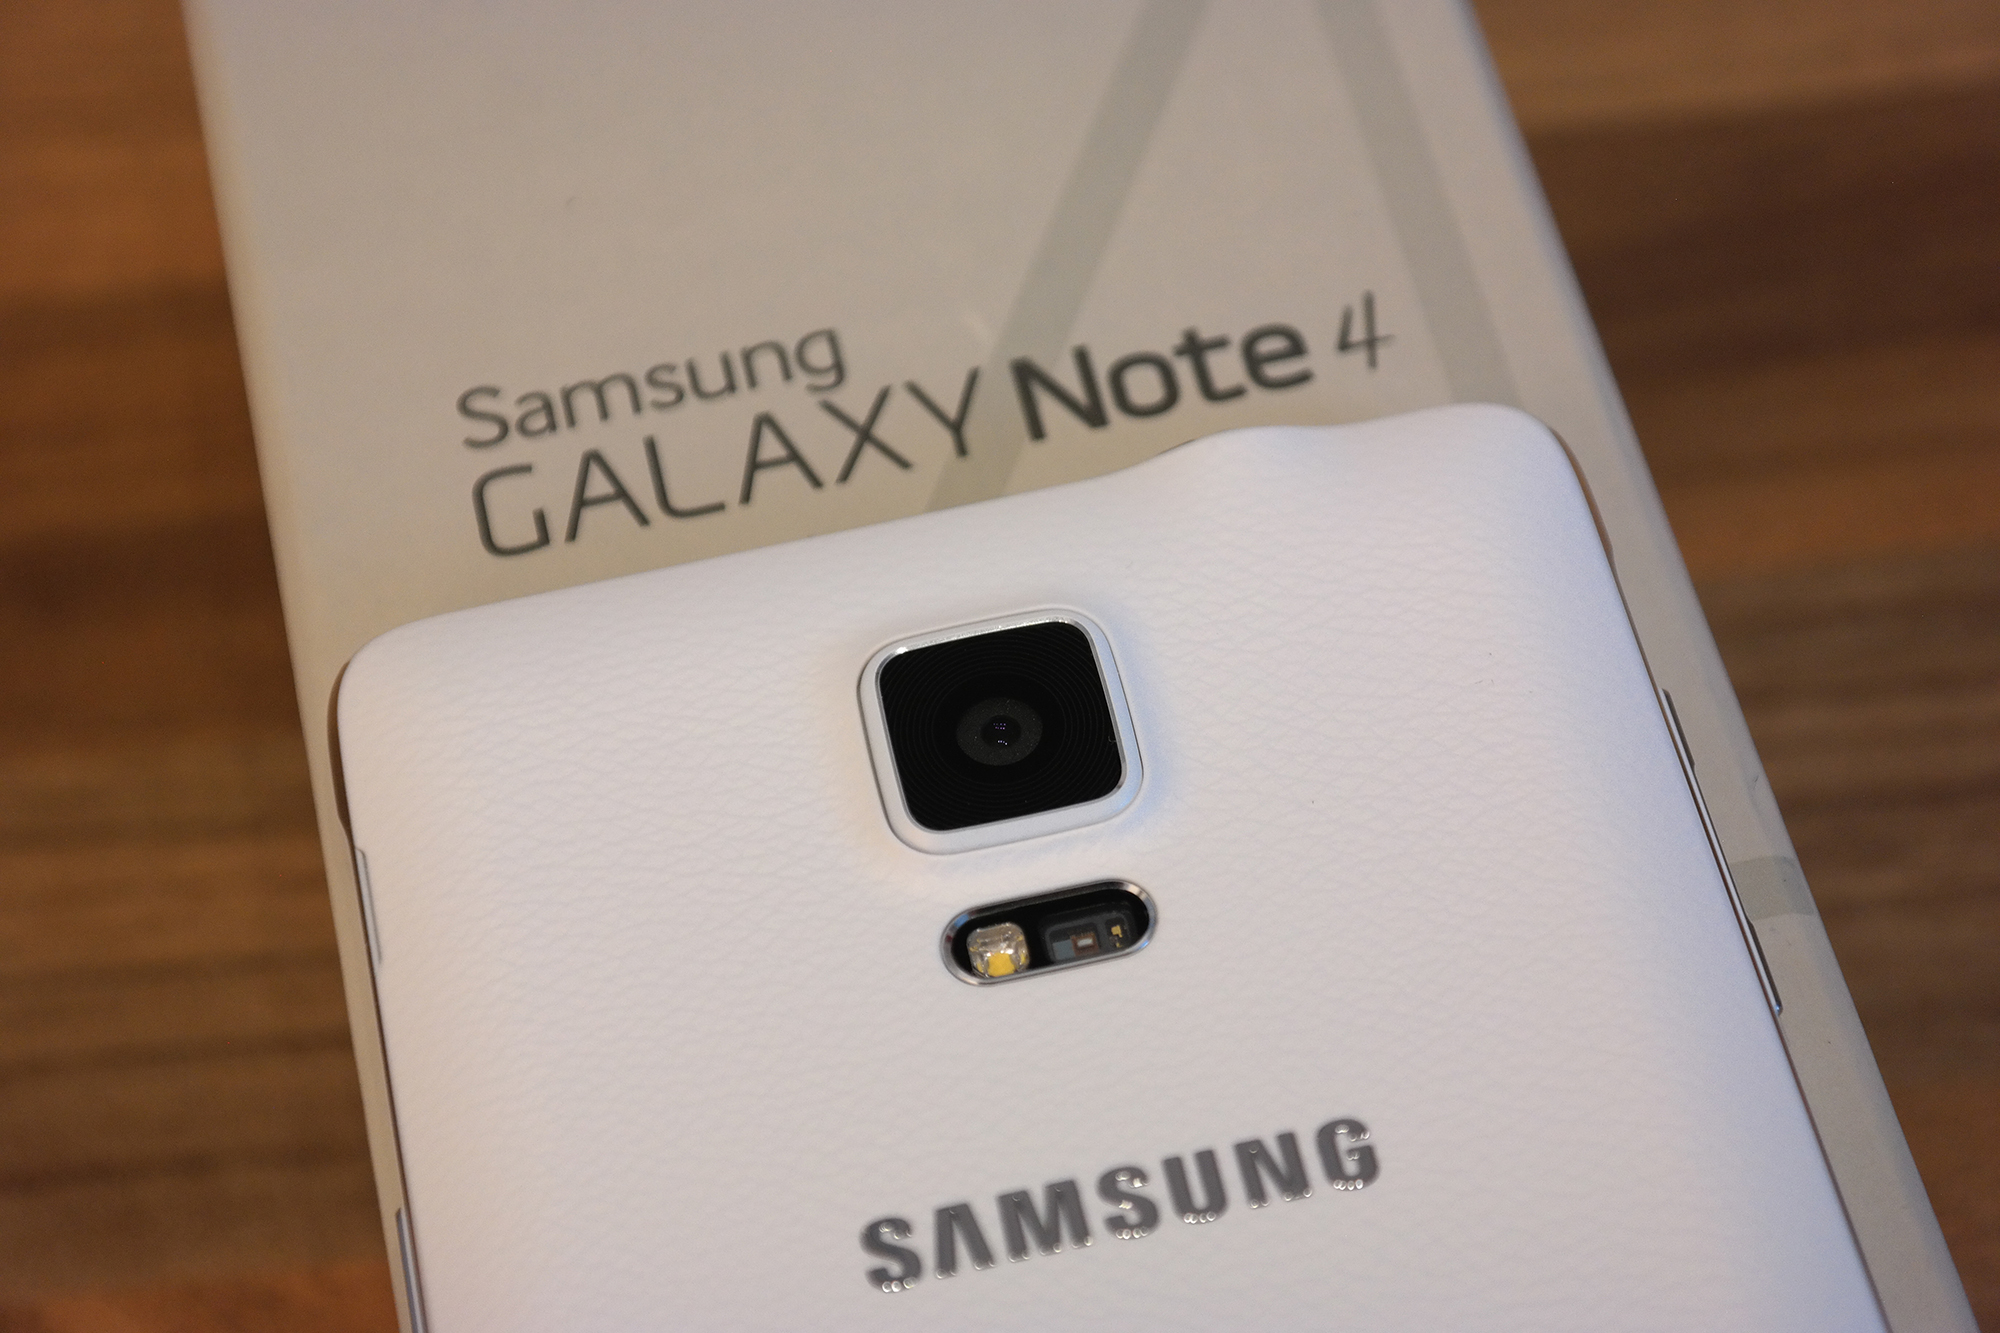 galaxy note 4 hat keinen isocell sensor all about samsung. Black Bedroom Furniture Sets. Home Design Ideas